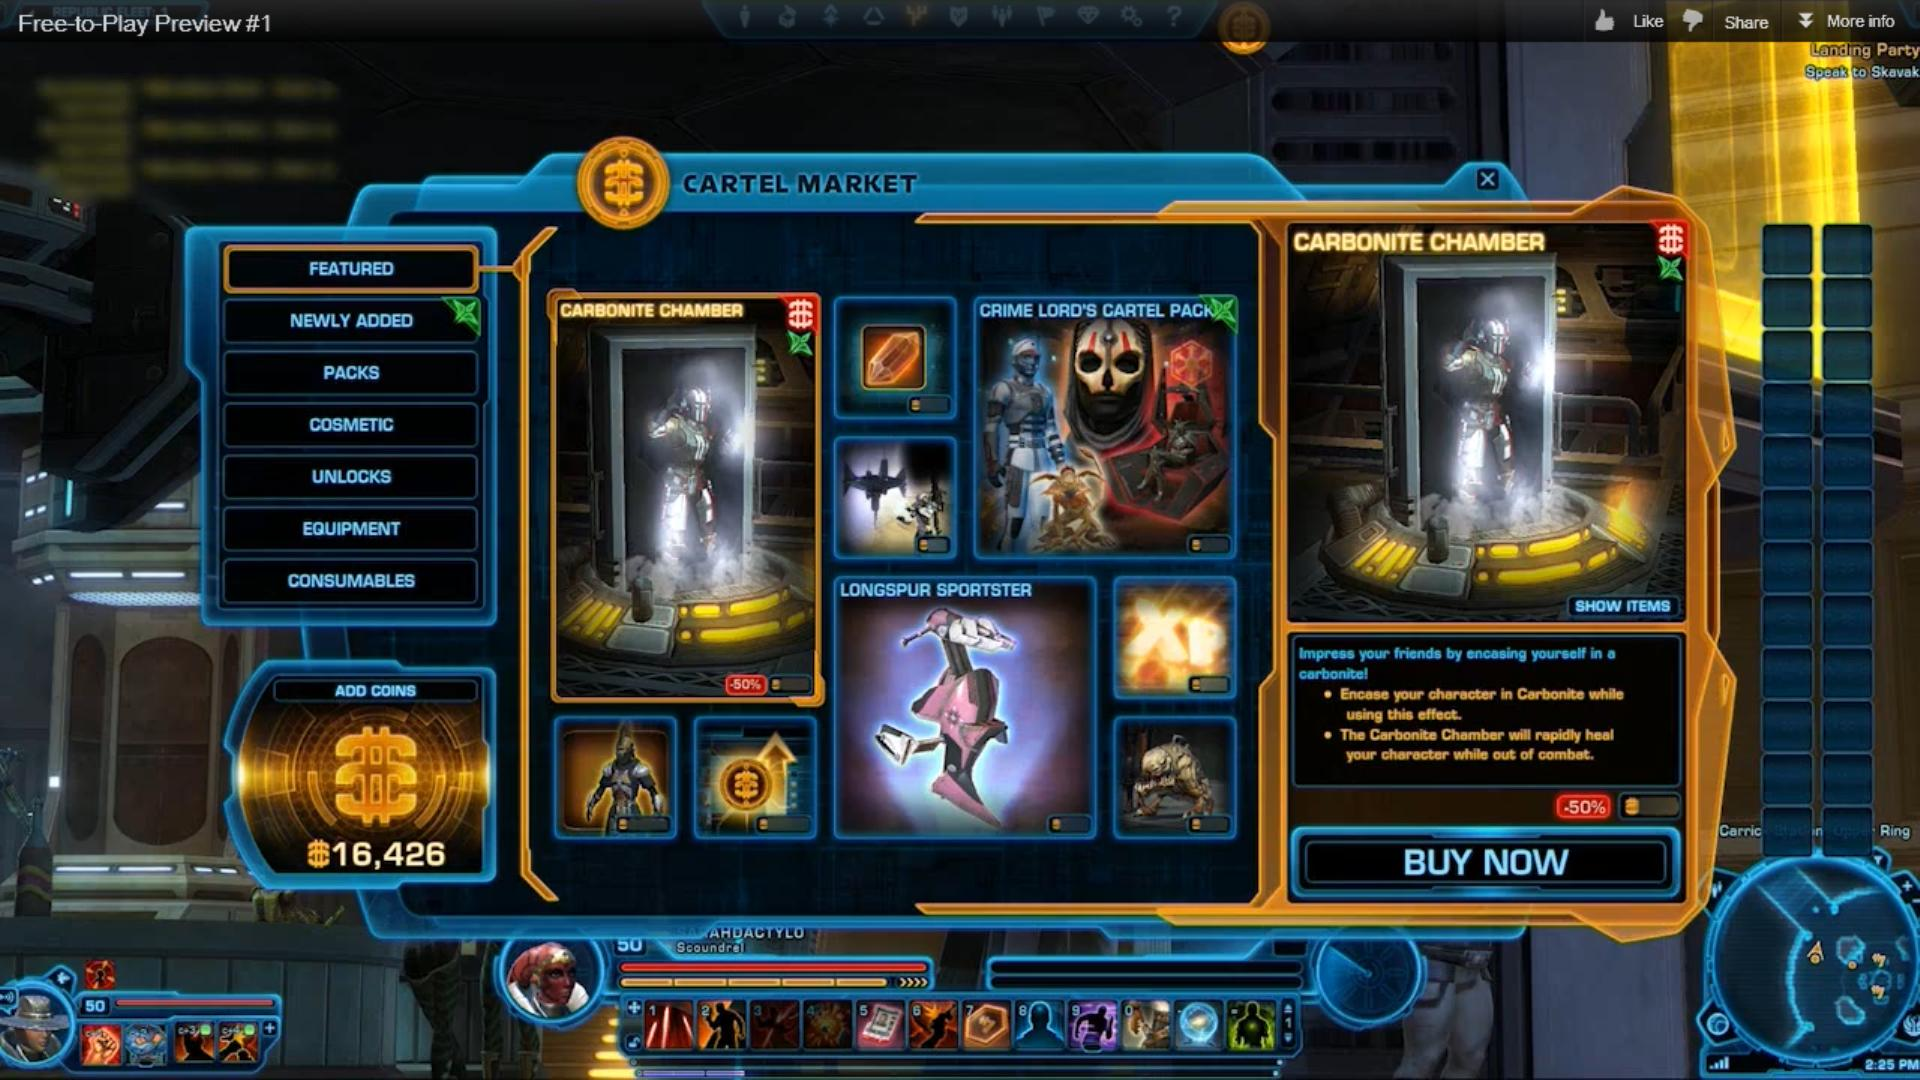 Large screenshot of in-game Cartel Market window